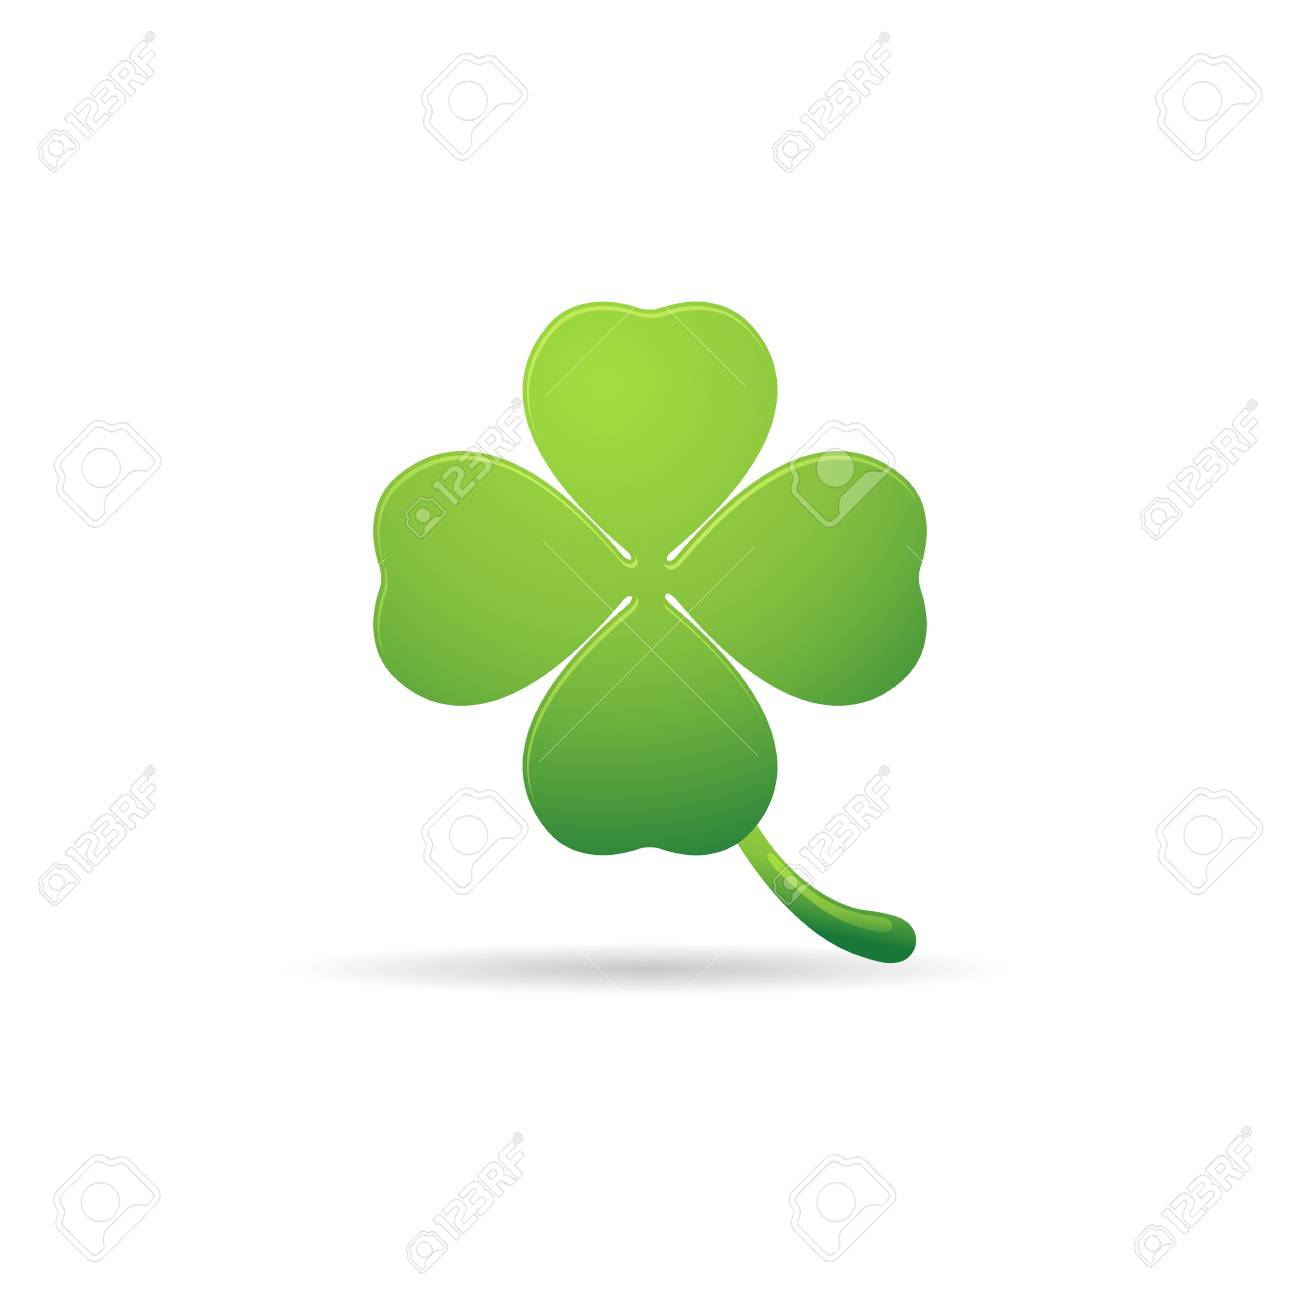 clover icon in color nature plant green stock vector 71633449 - Clover Color